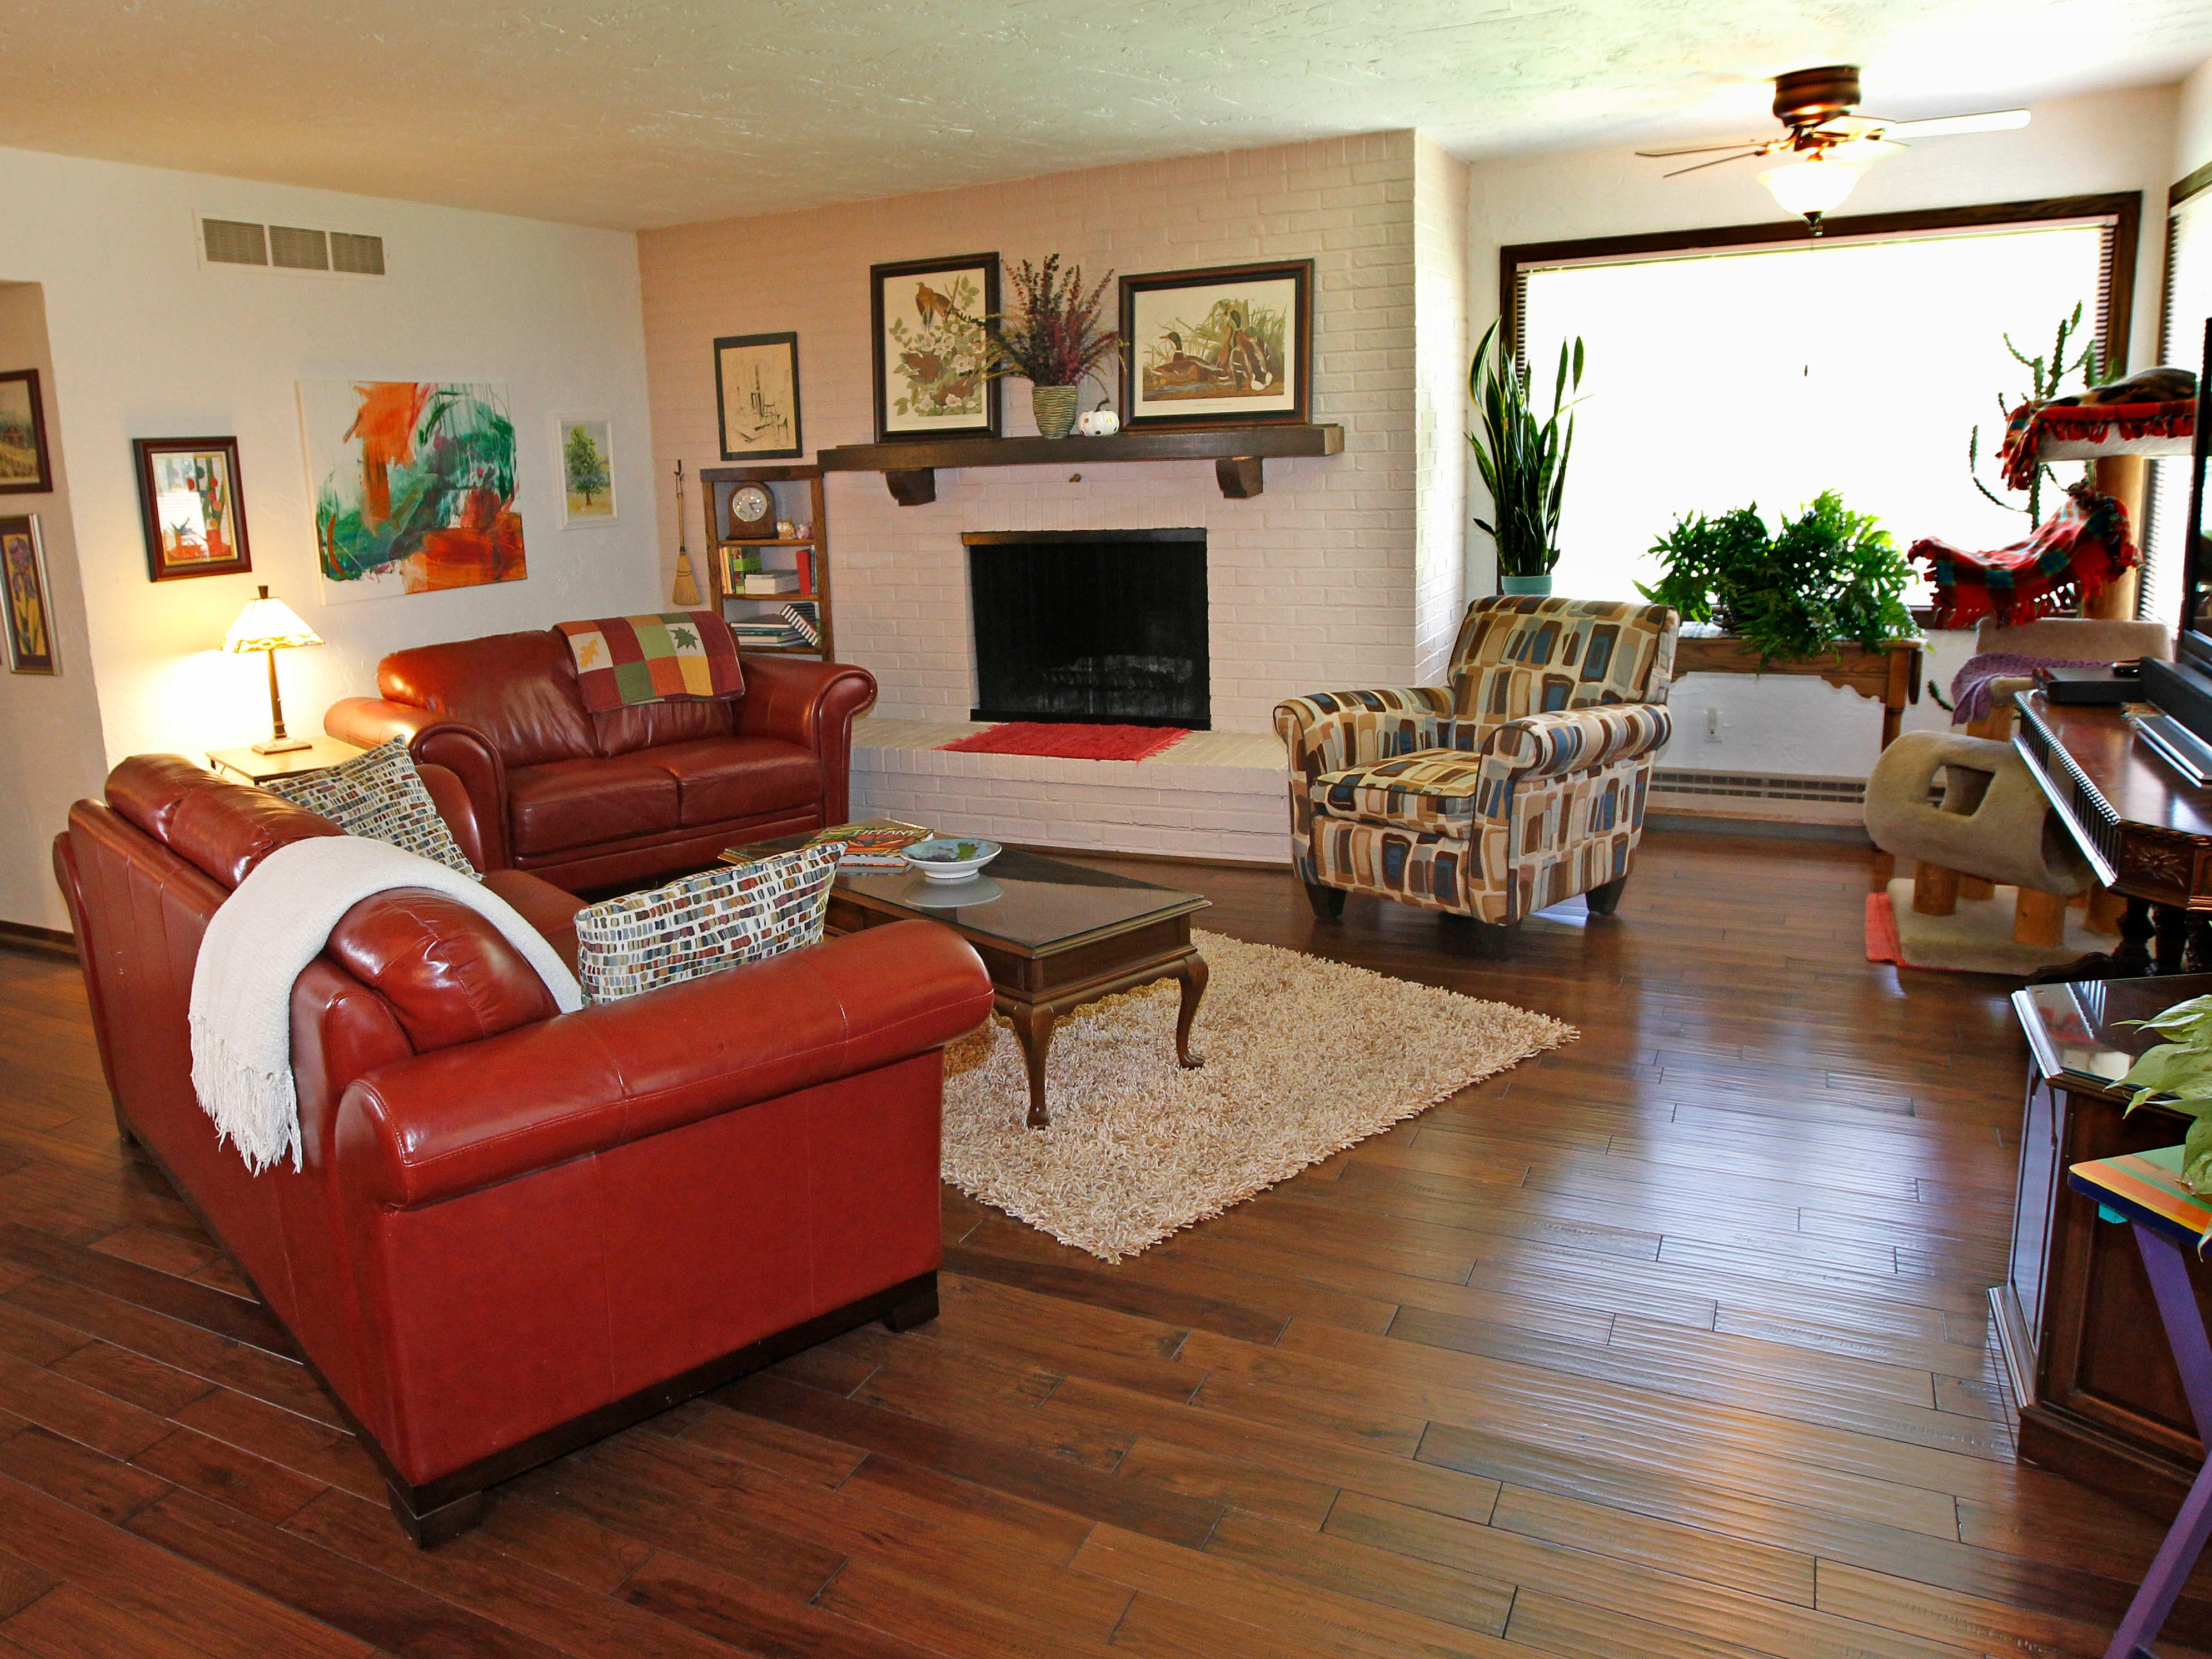 The living room features a fireplace and the homeowner's artwork along with her collection of other art pieces.